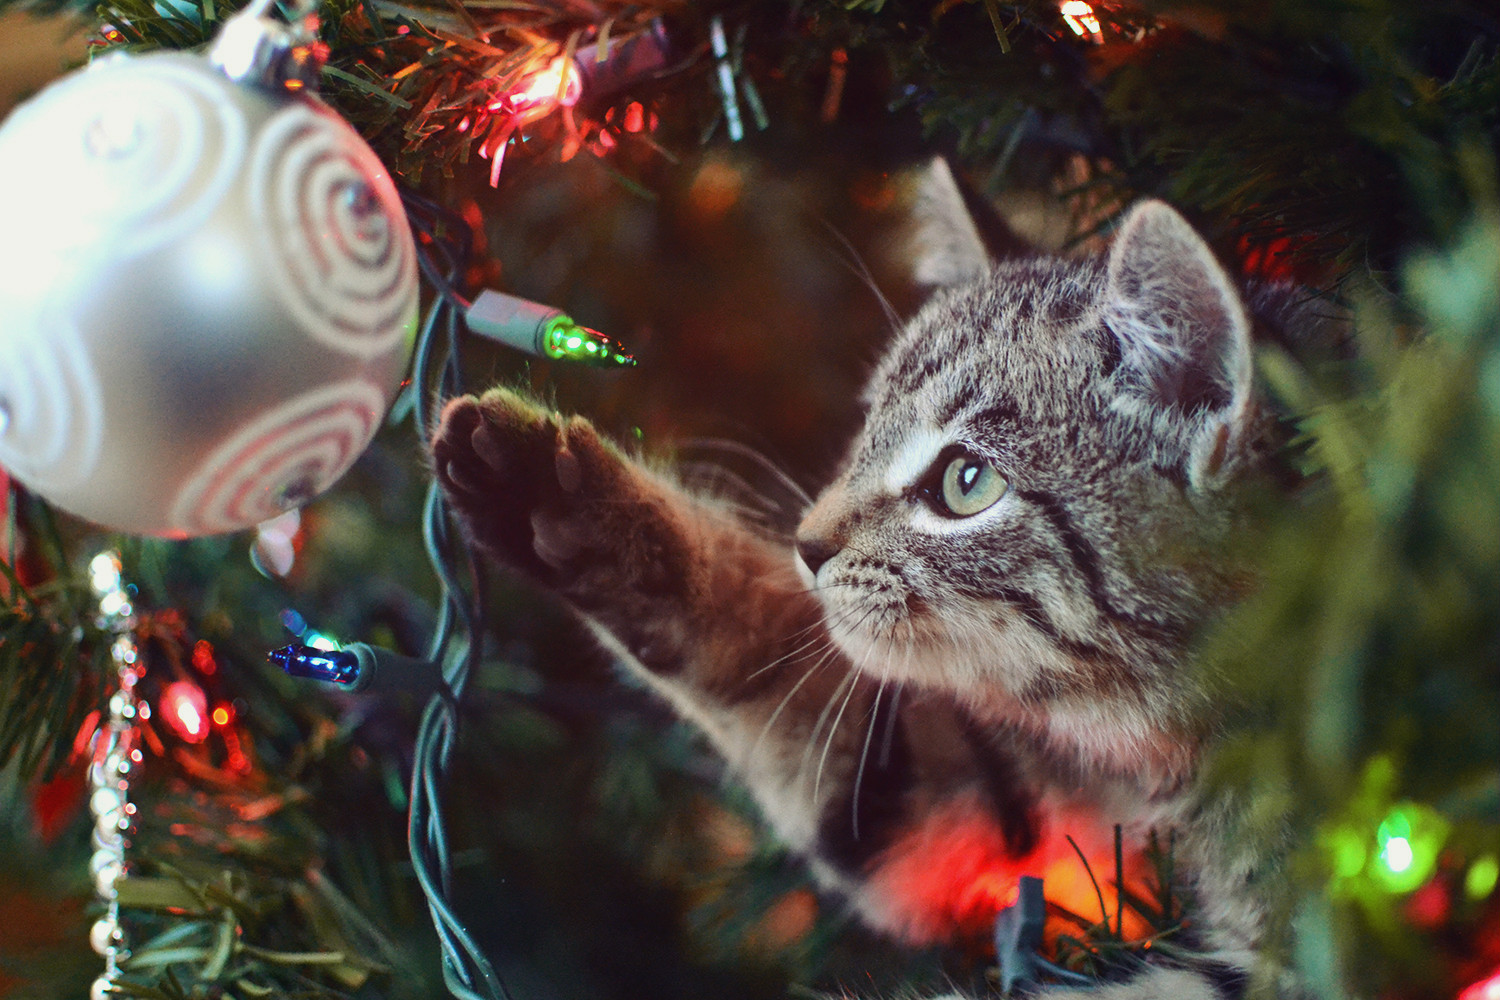 Curious Kittens and Ornaments